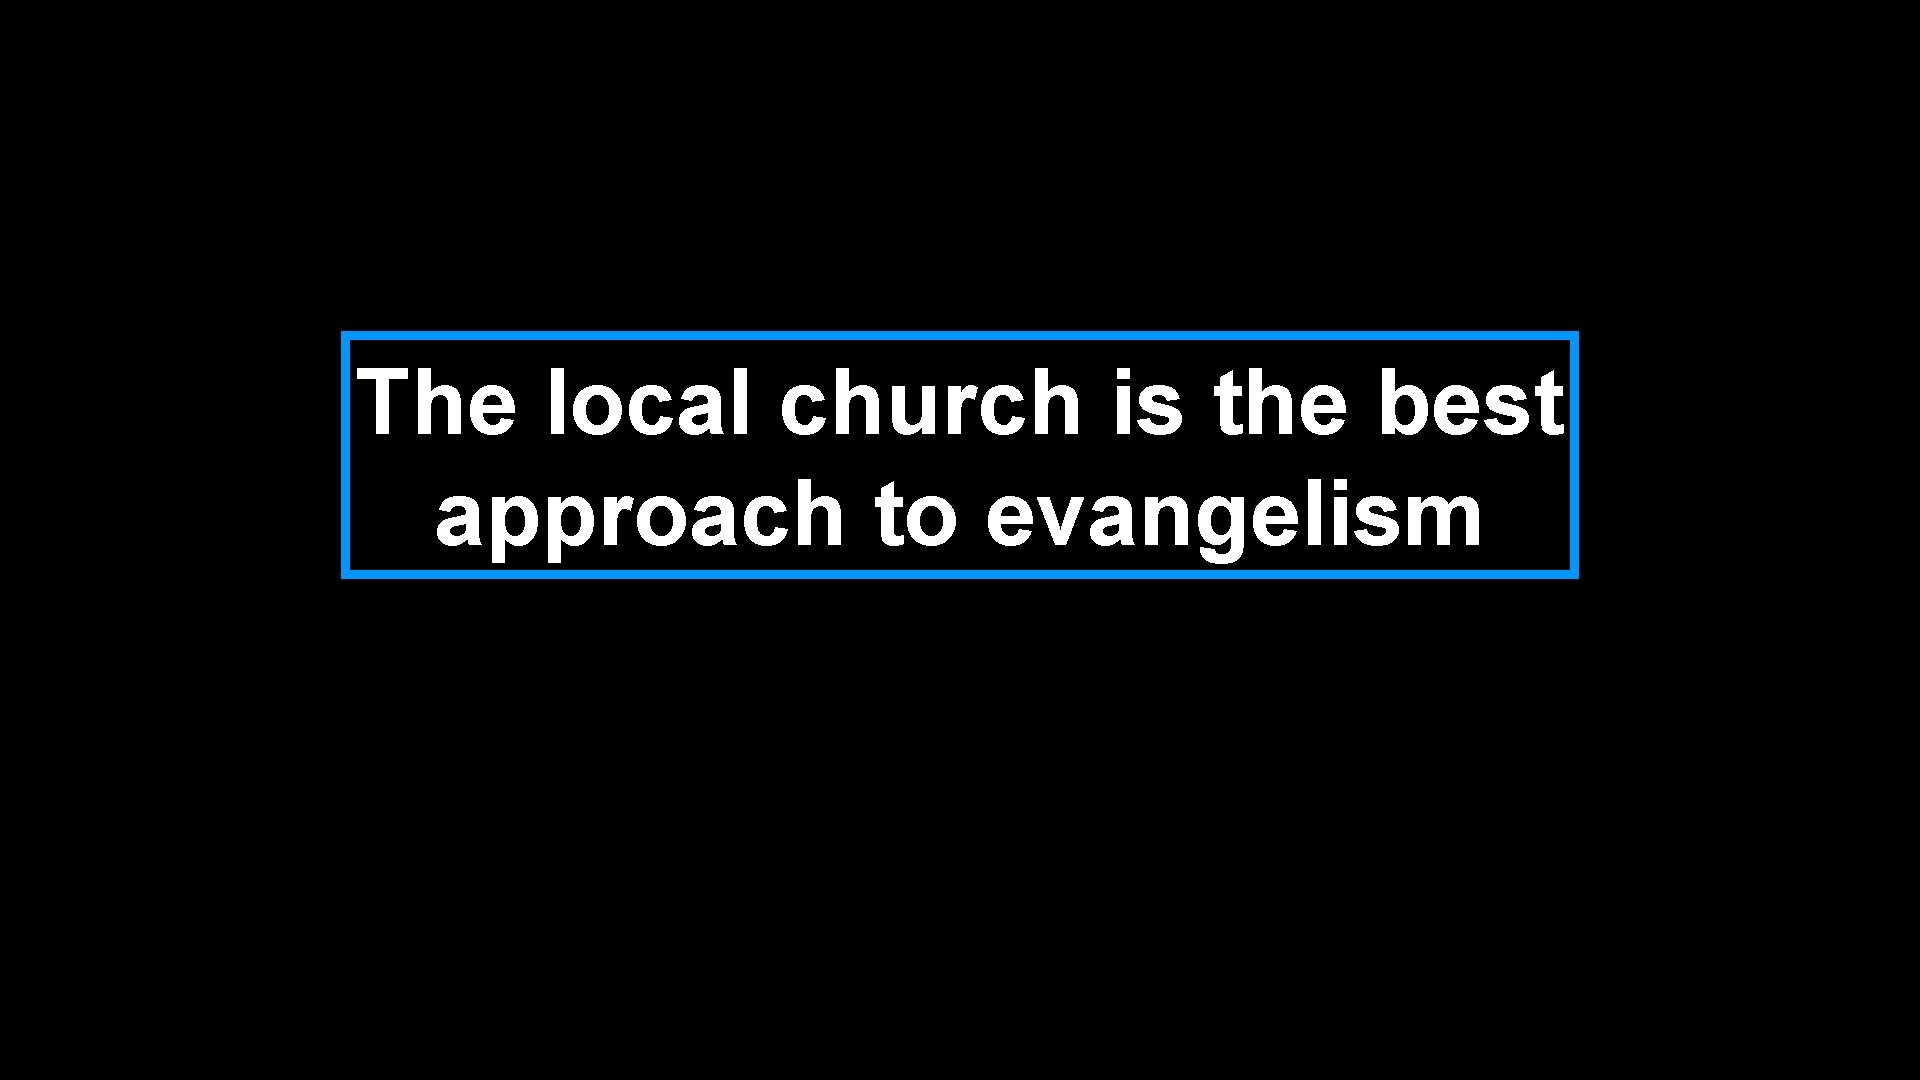 The local church is the best approach to evangelism